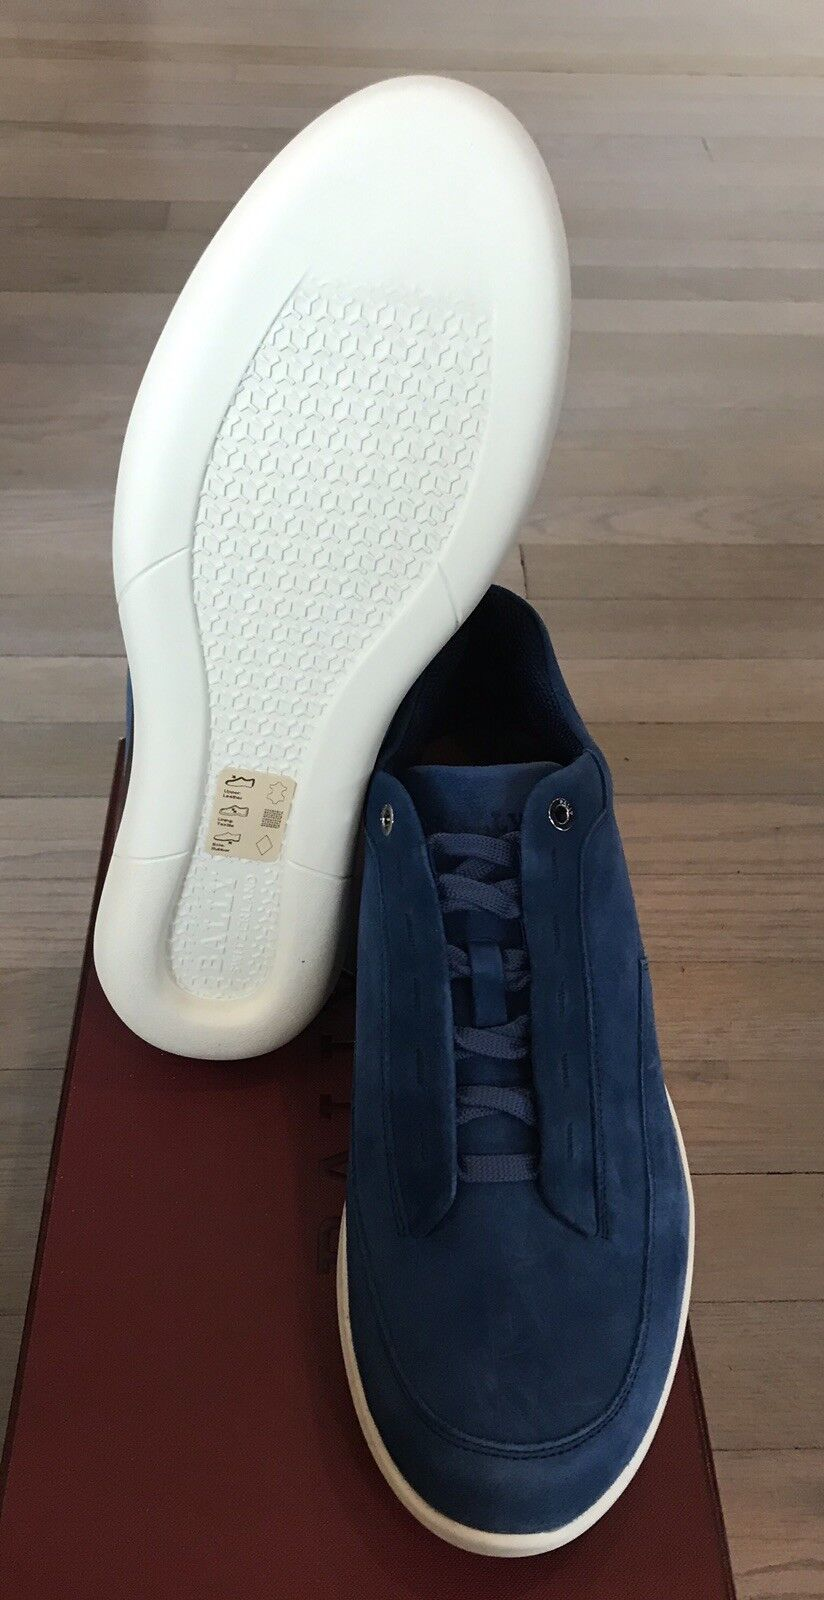 600  Bally Avier 120 Prussian bluee Suede Sneakers Sneakers Sneakers size US 10 Made in  1441ab